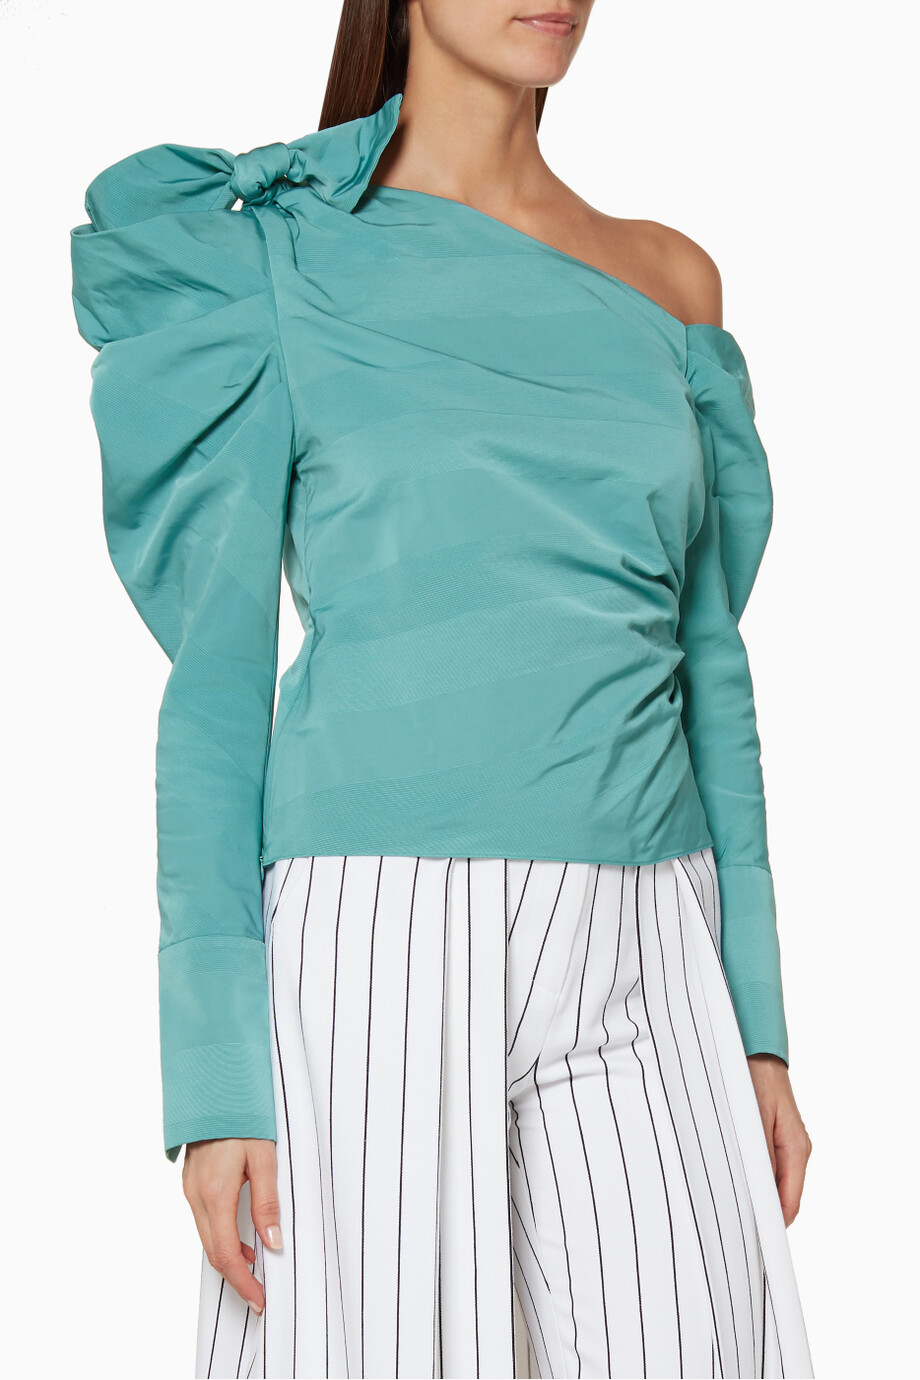 d4b2116247c4a Shop HELLESSY Blue Turquoise One-Shoulder Bow-Detail Top for Women ...